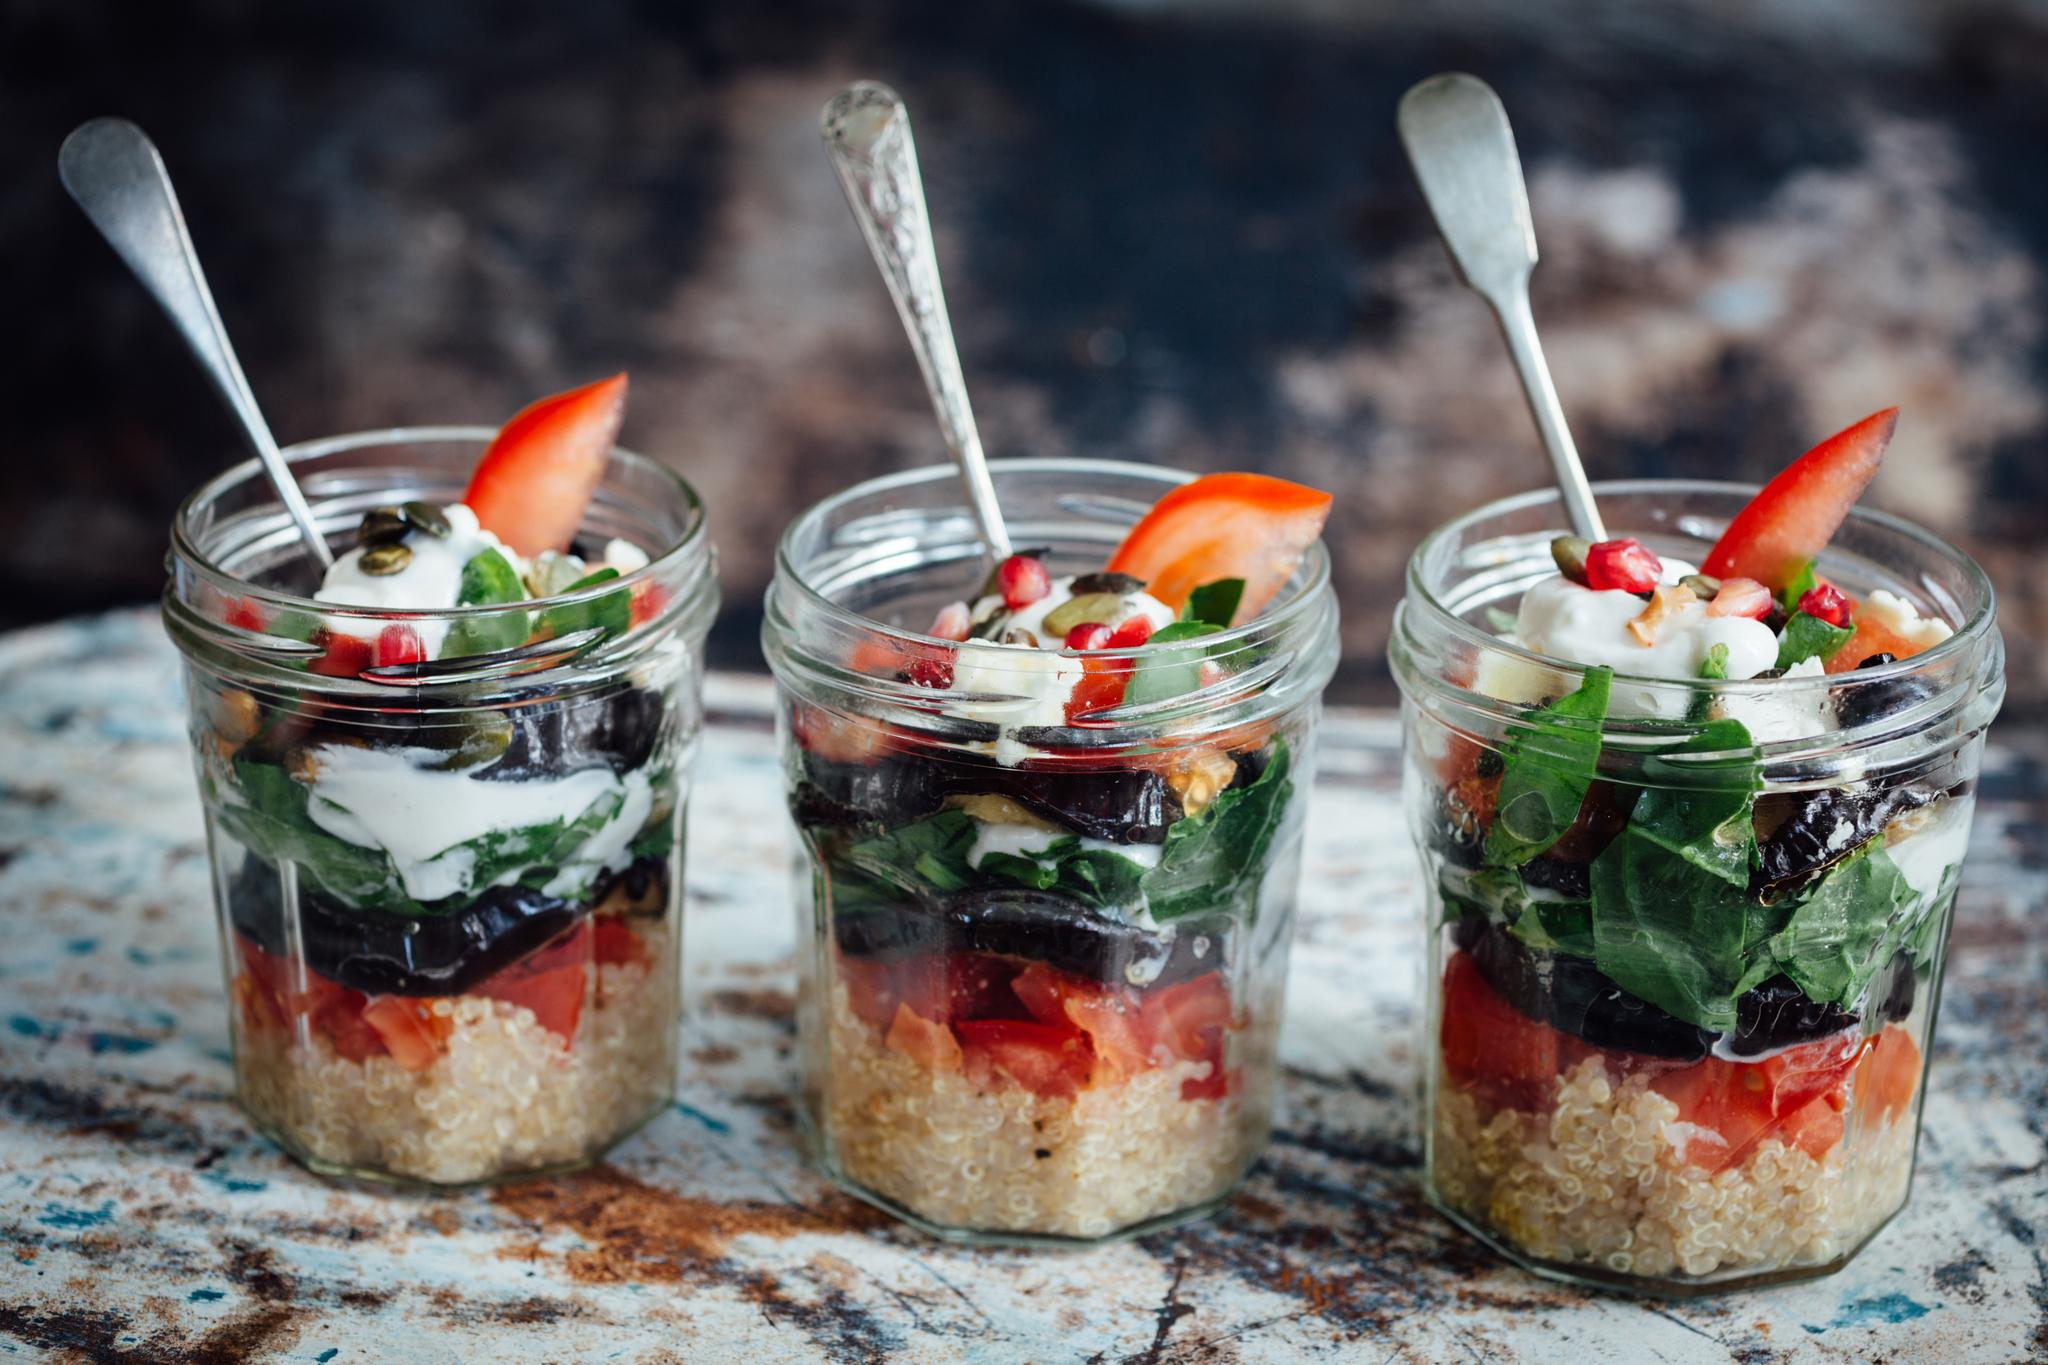 Dishes like these vegetarian veggie pots—consisting of layers of quinoa, and roasted vegetables including aubergine, red onion, red pepper, tomato, and fresh spinach leaves and topped with a Skyr (Icelandic very low fat yogurt) dressing—are supposed to be suitable for IBS sufferers. Dieticians have seen remarkable benefits in FODMAP-restricted diets for patients with IBS and other gastrointestinal disorders.